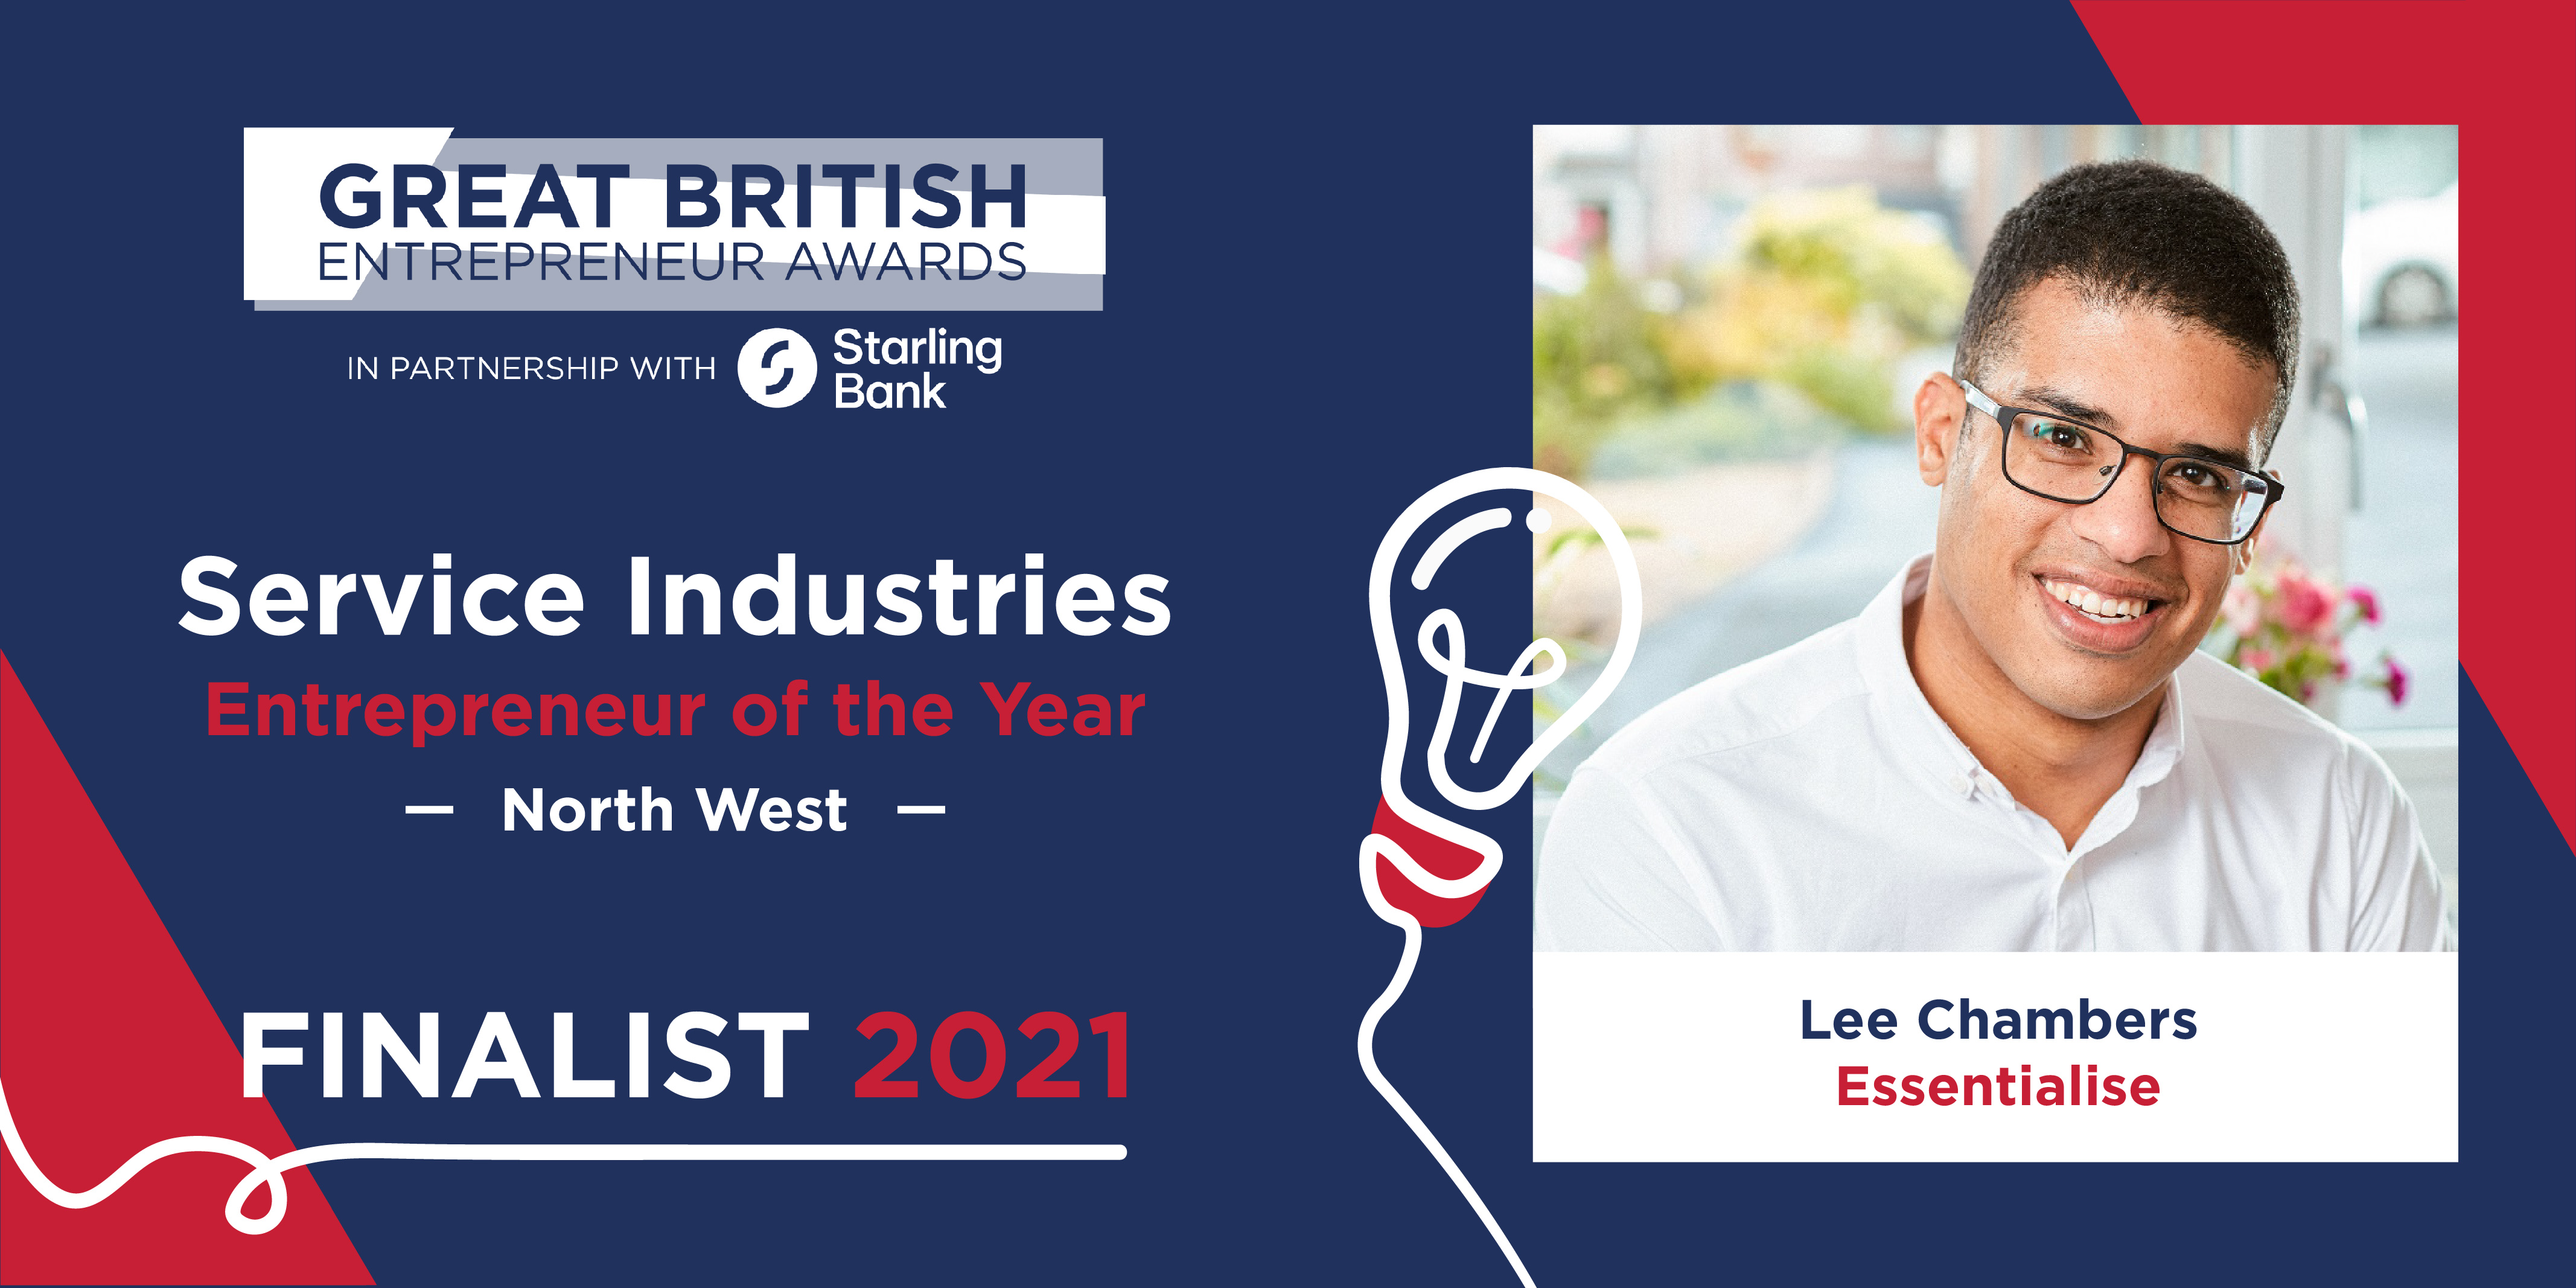 British entrepreneur Lee Chambers up for a Great British Entrepreneur Award